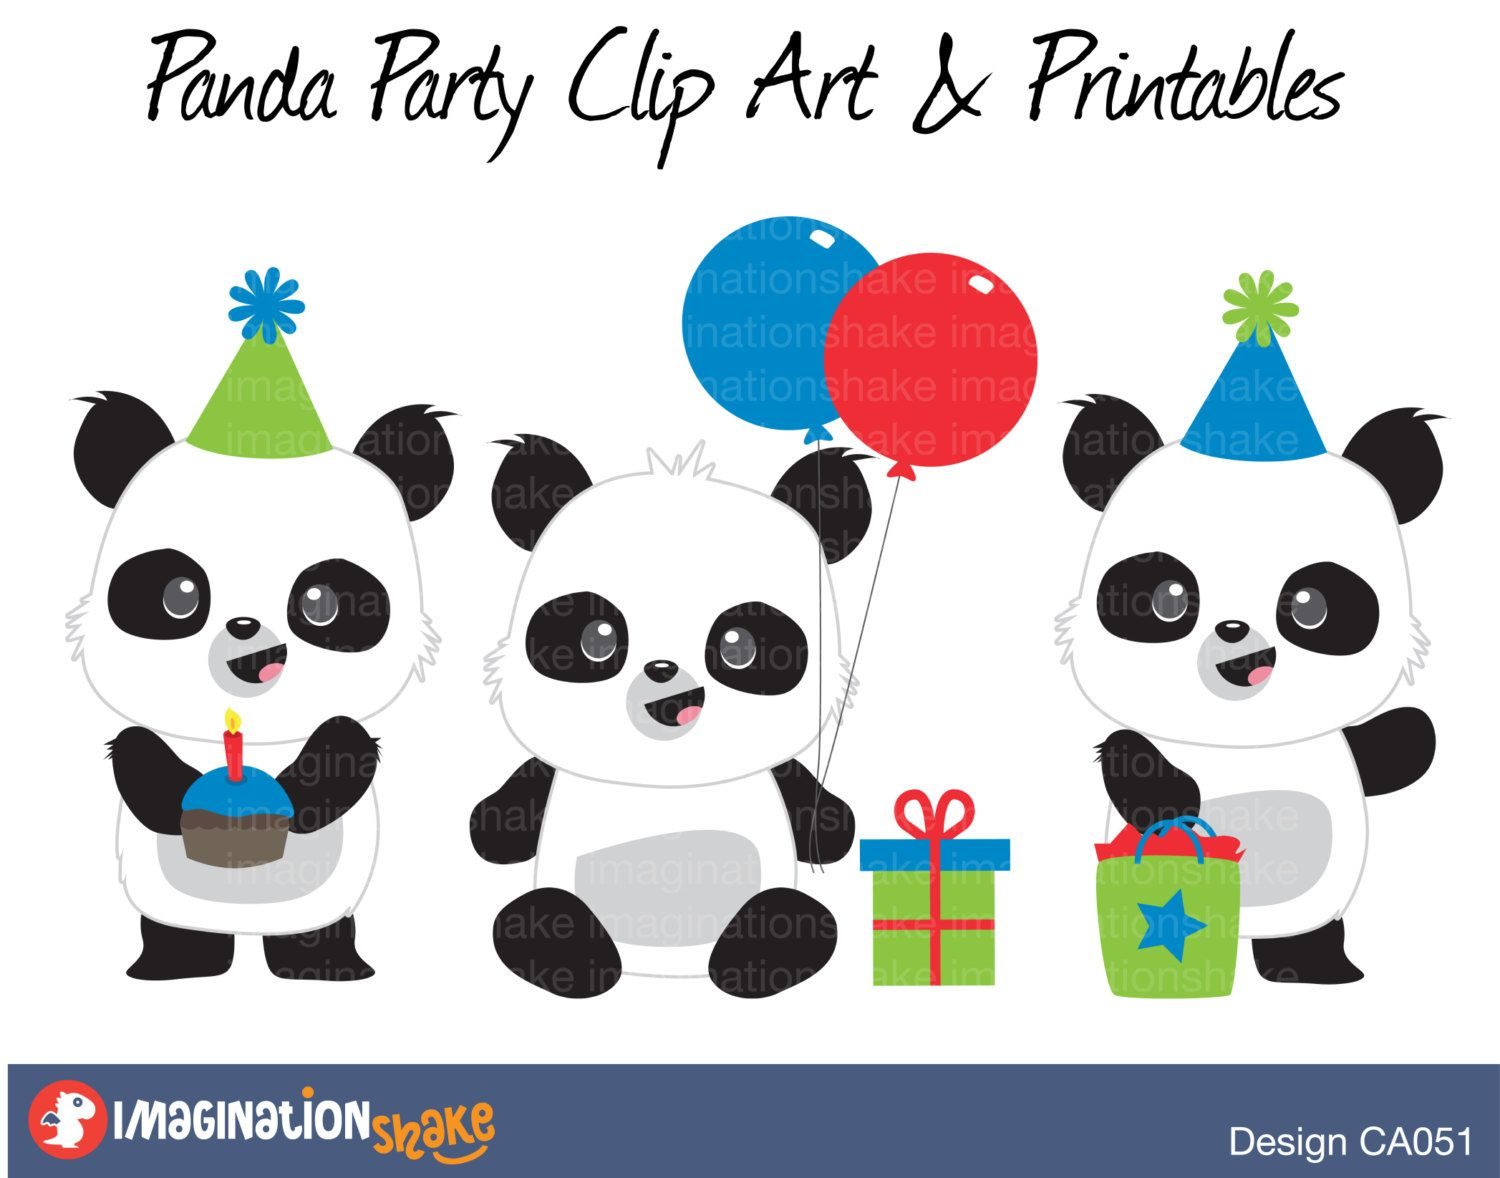 Panda Party Clip Art Printables Set Ca051 Clipart Panda Wall Decorations Panda Printable Panda Party Red An Panda Party Diy Birthday Gifts Clip Art